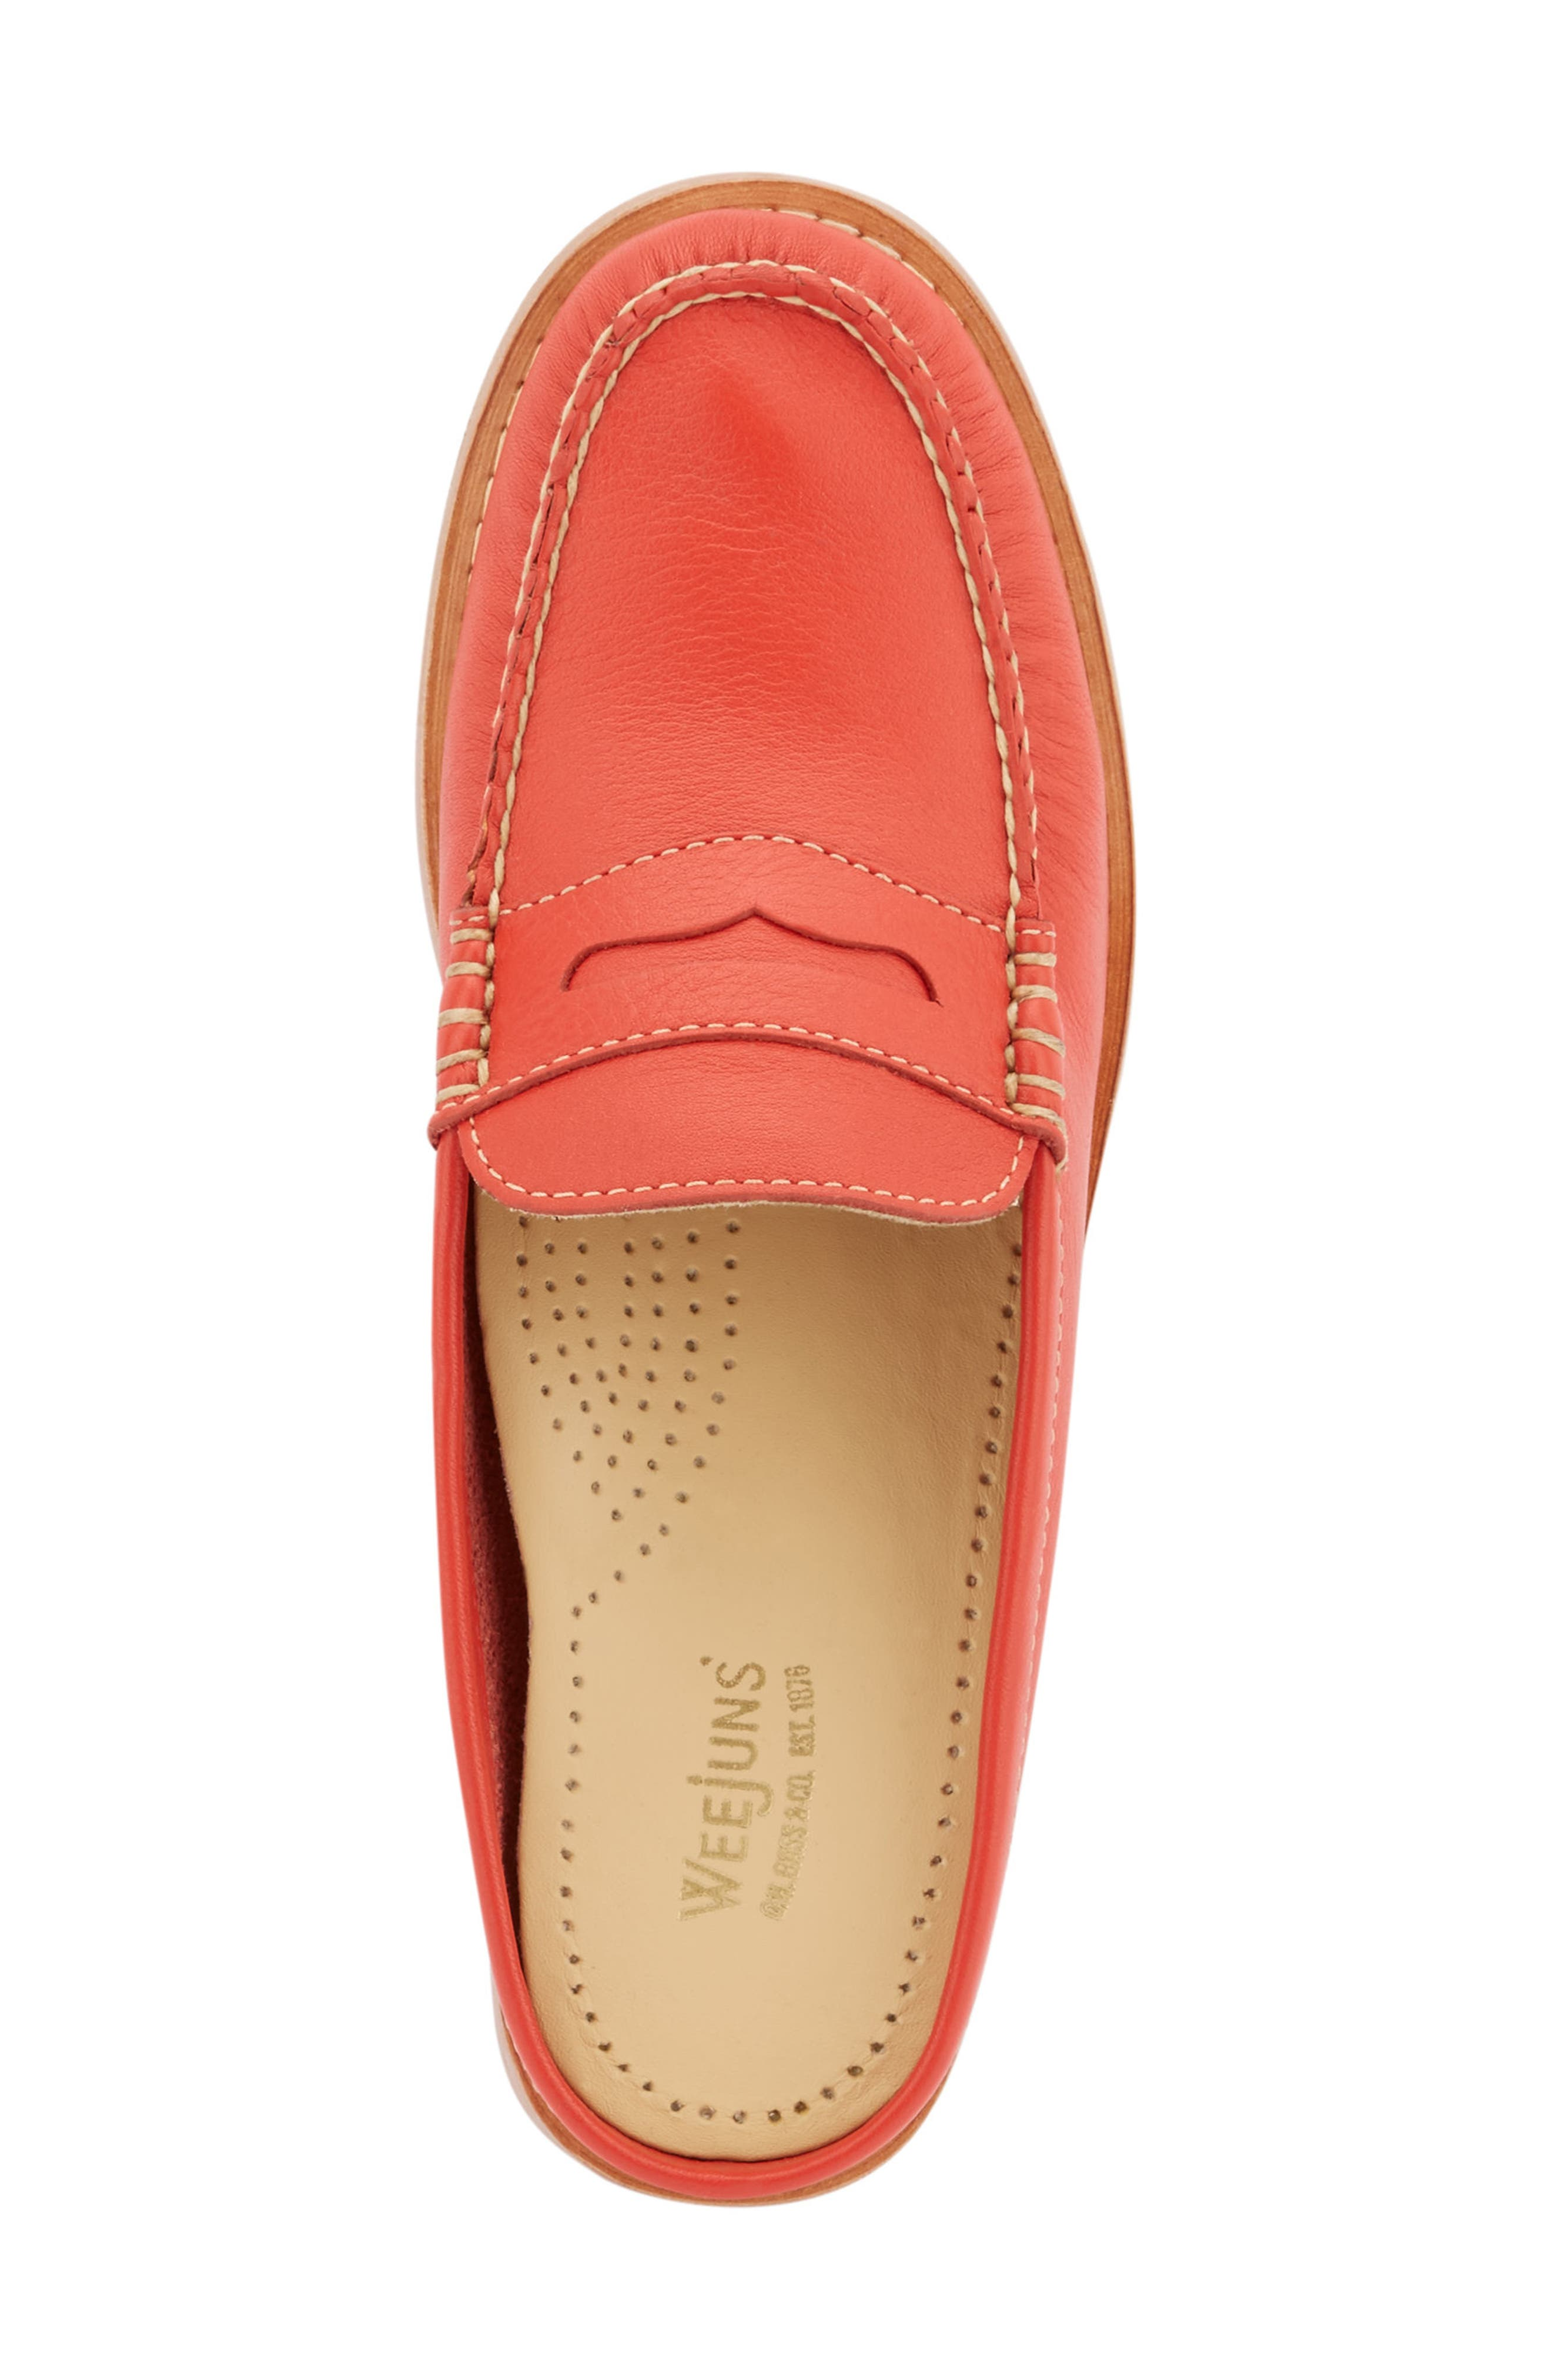 Wynn Loafer Mule,                             Alternate thumbnail 5, color,                             Roma Red Leather